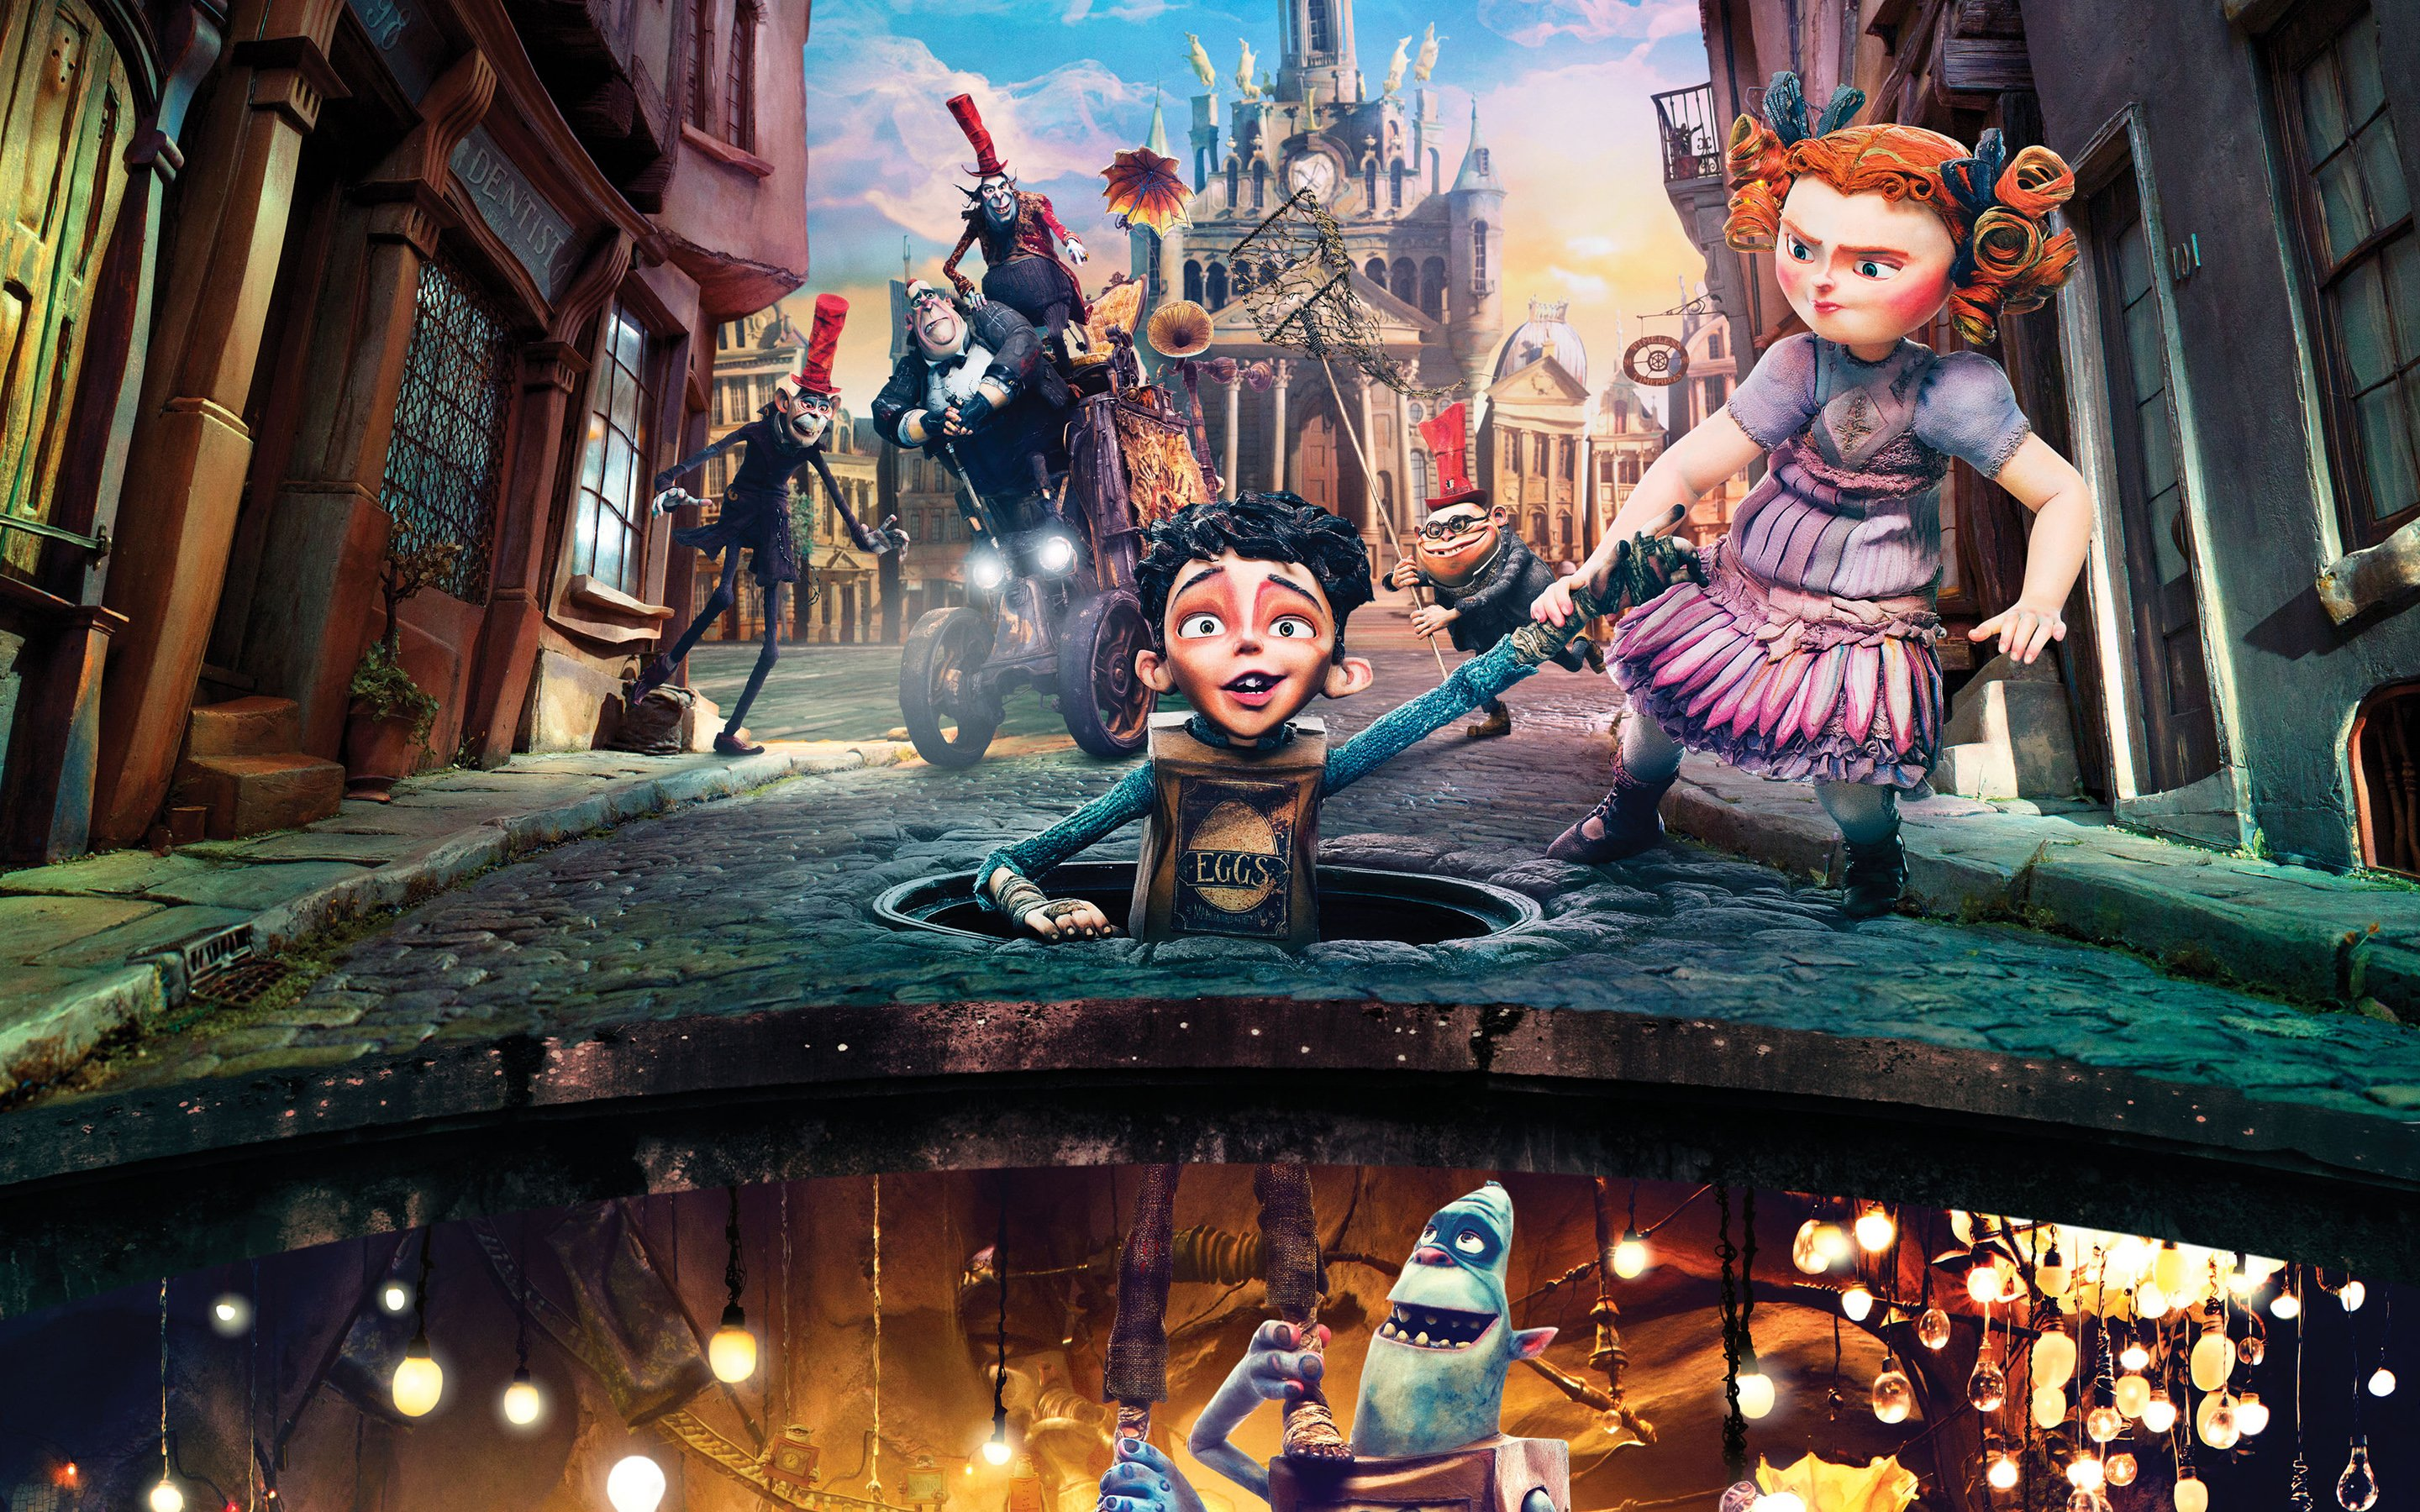 The Boxtrolls Hd 2014 Wallpapers Background Wallpapers 2880x1800